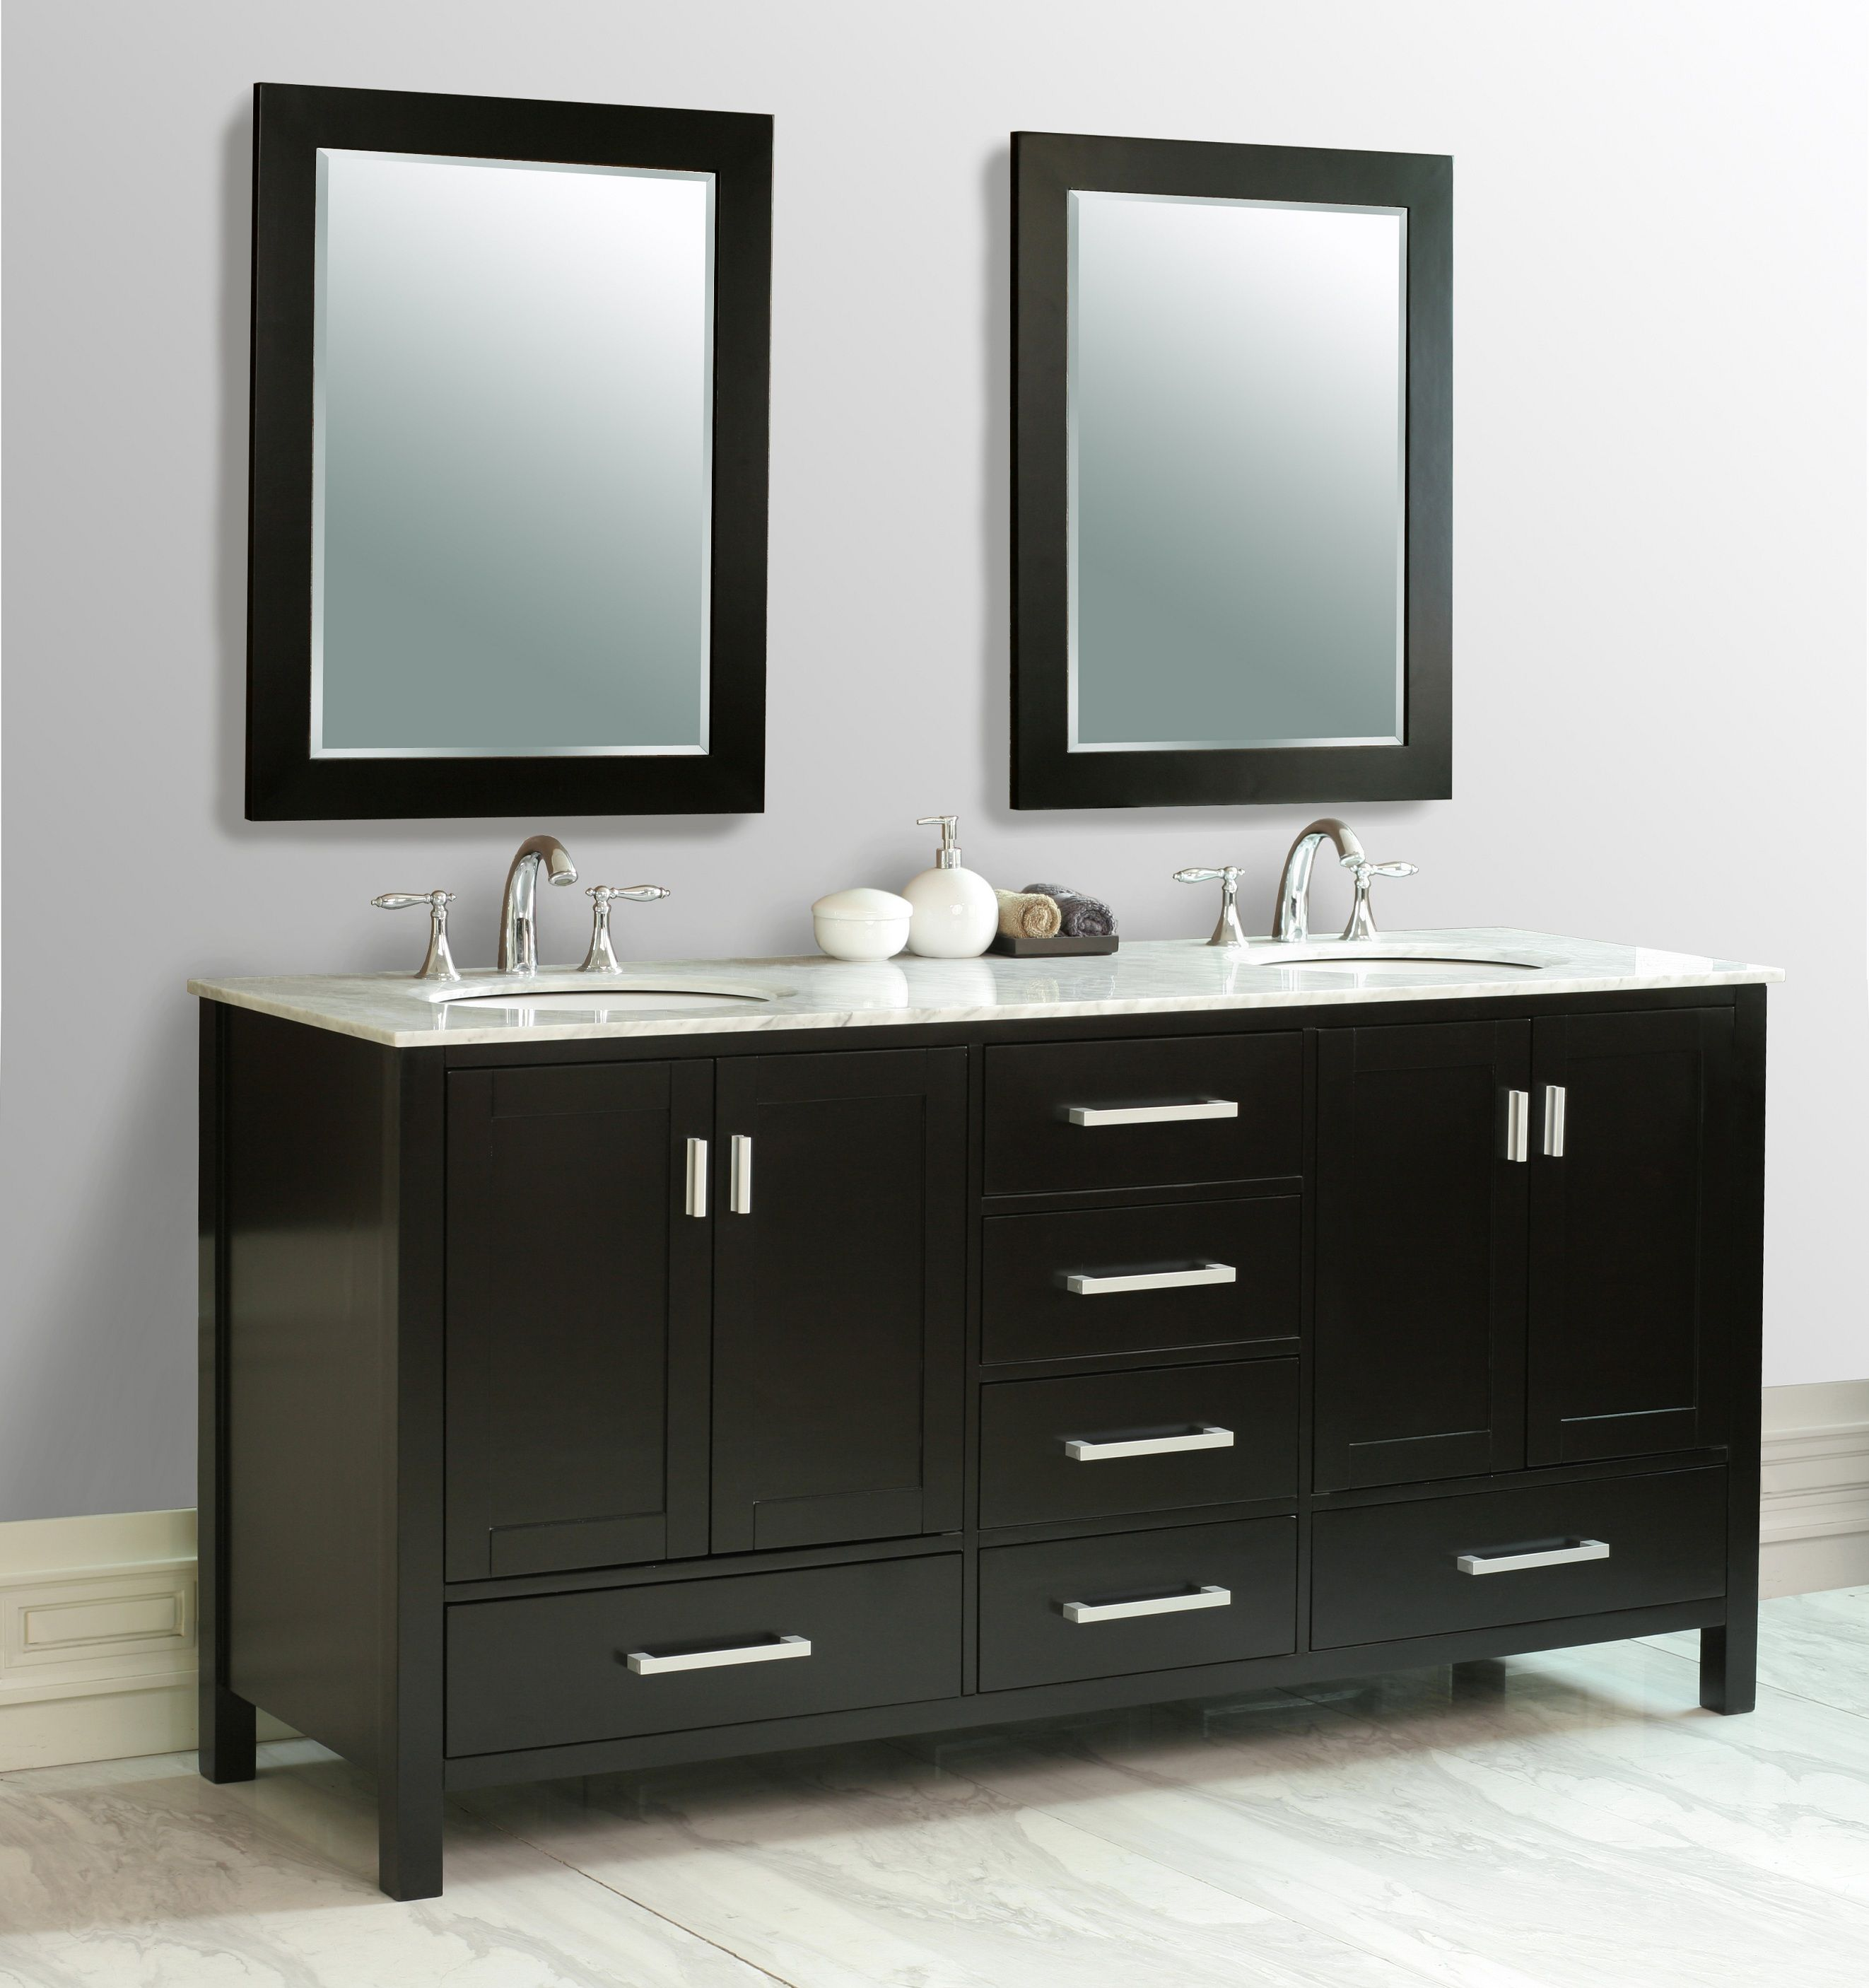 Pics Of Malibu inch Double Sink Vanity Carrera Marble Top